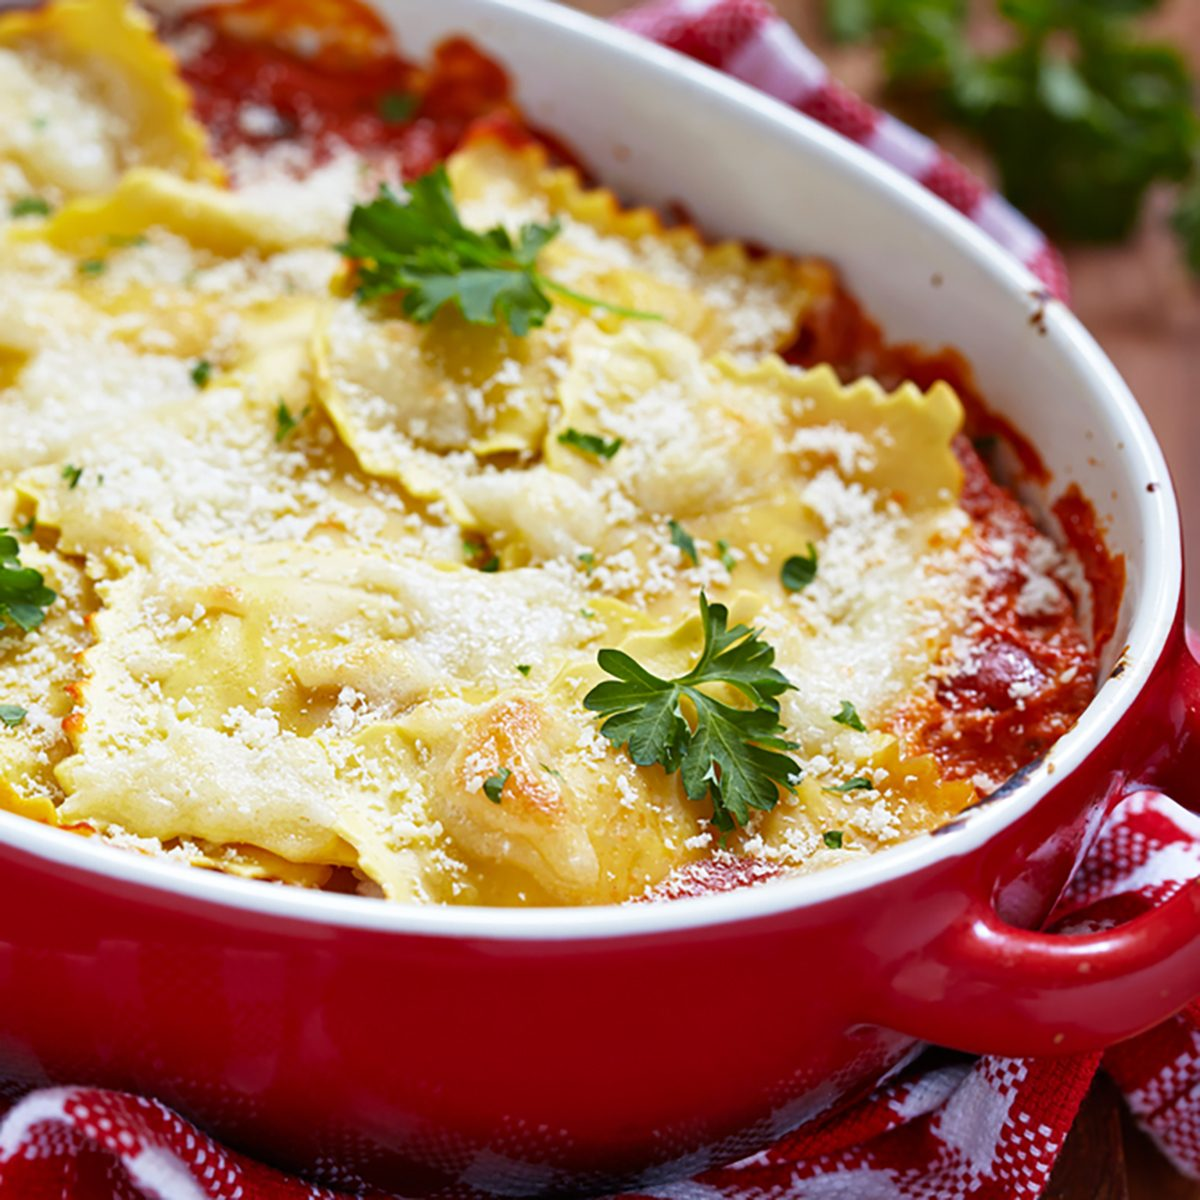 Baked ravioli with ham and cheese in tomato sauce